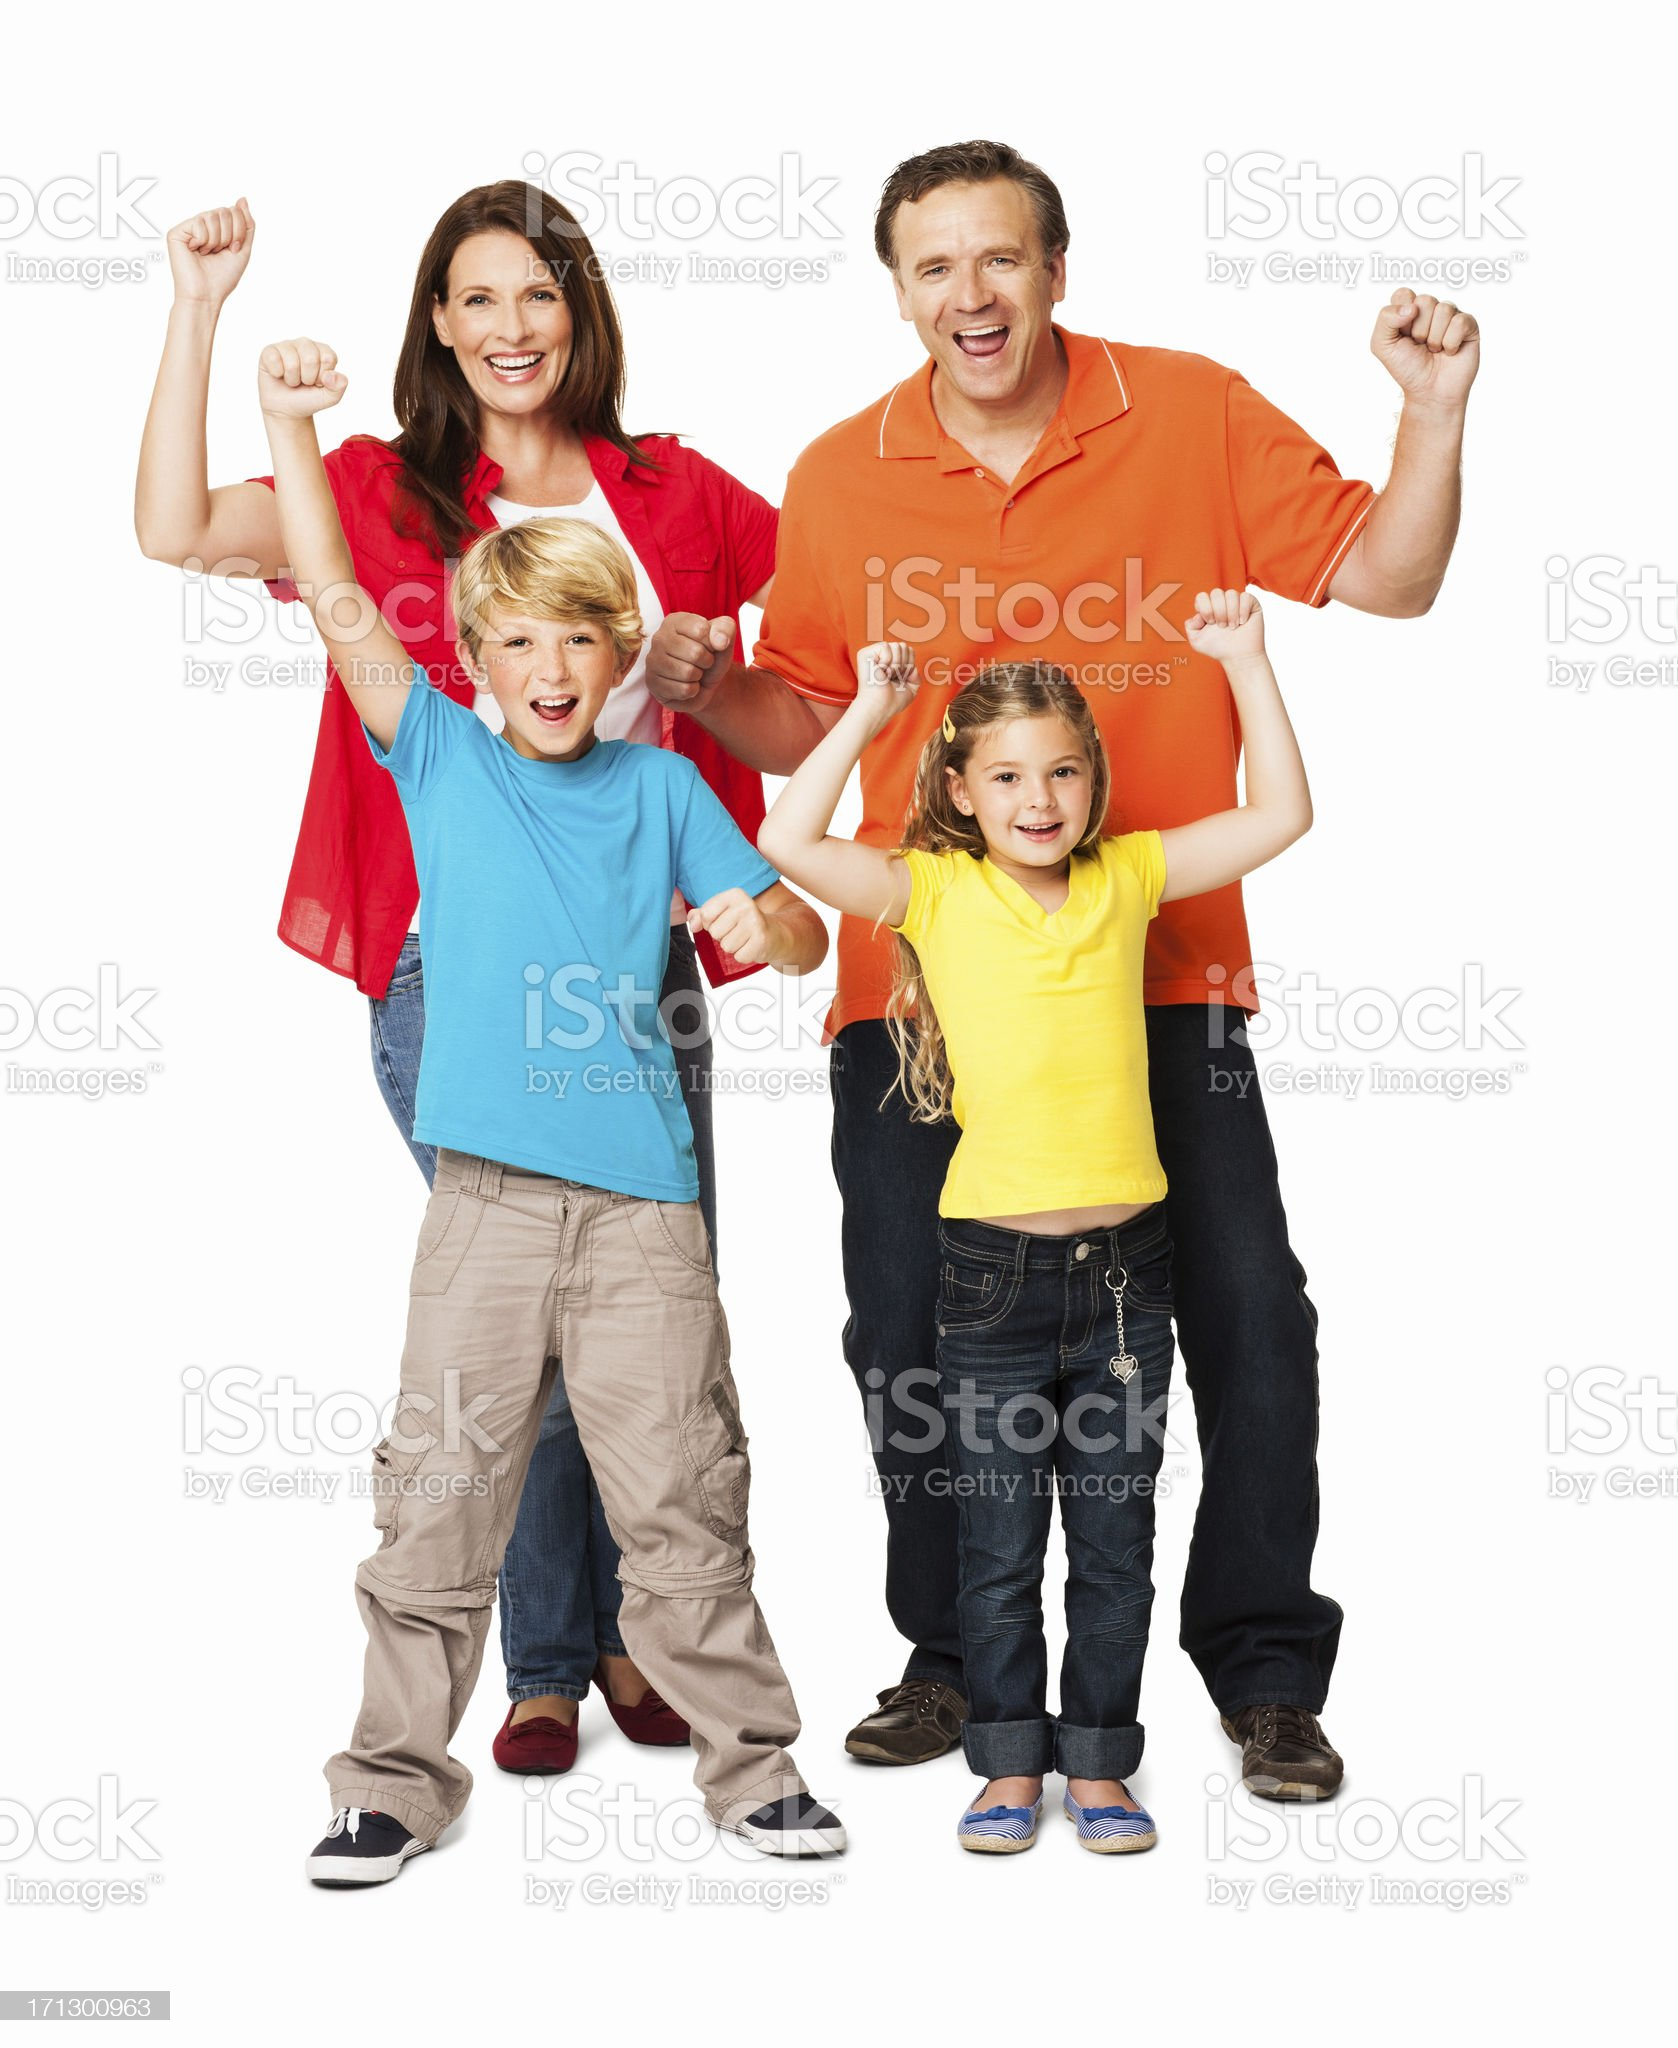 Excited Family Celebrating Success - Isolated royalty-free stock photo